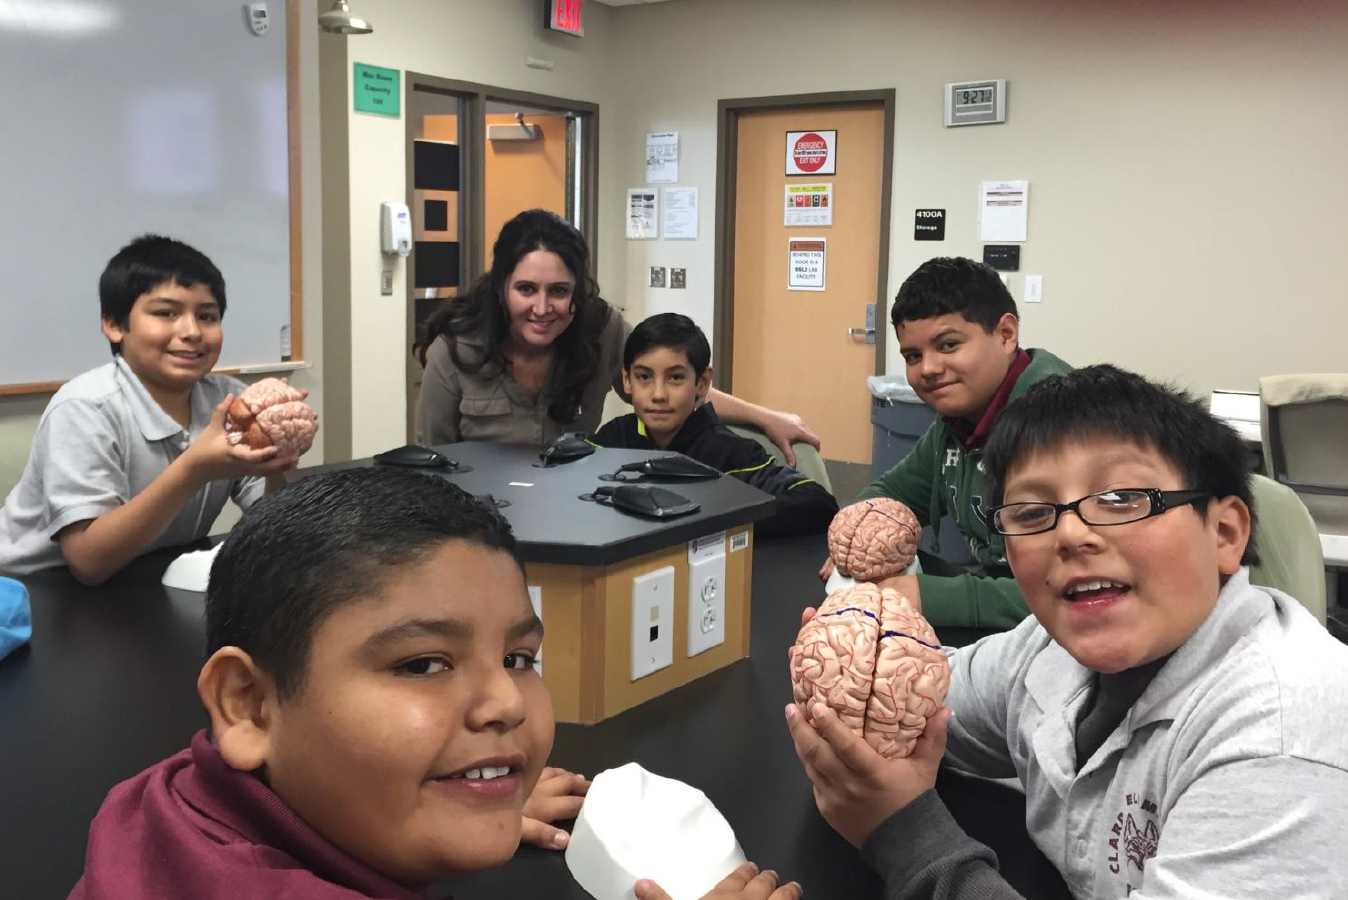 Student Service Organization Connects with Fifth Graders